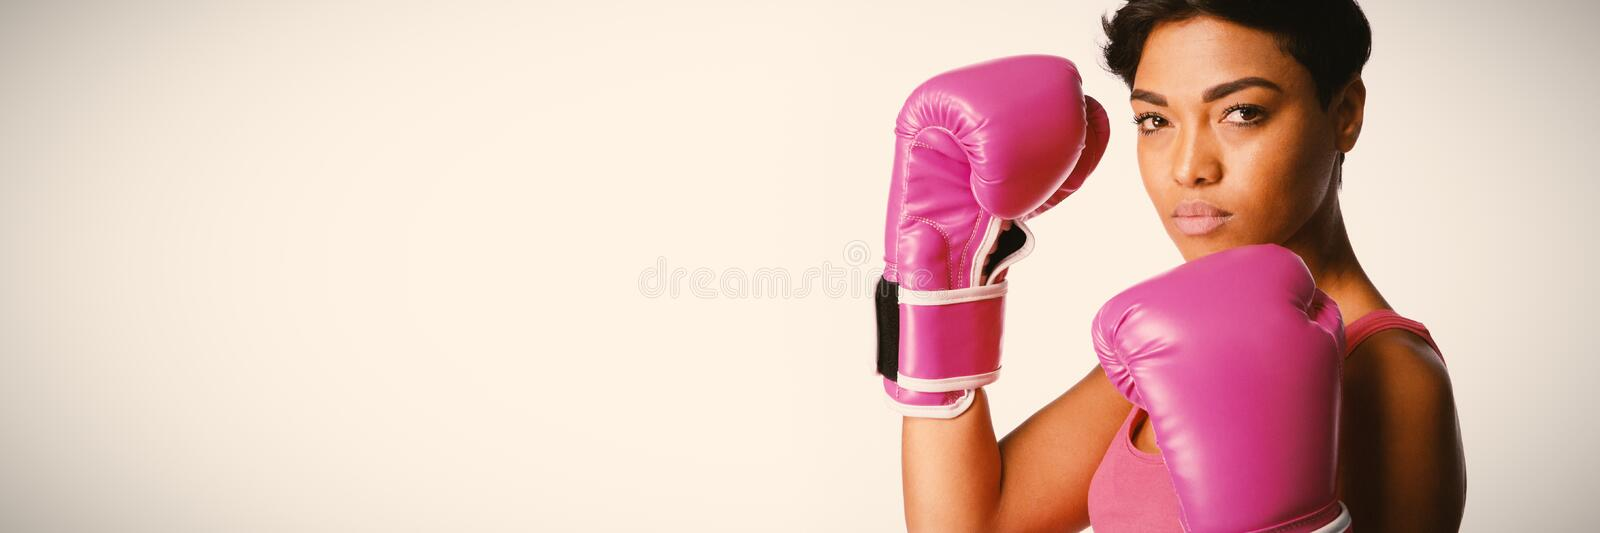 Side shot of woman fighting against breast cancer. Side shot of standing woman for breast cancer awareness on white background stock photography